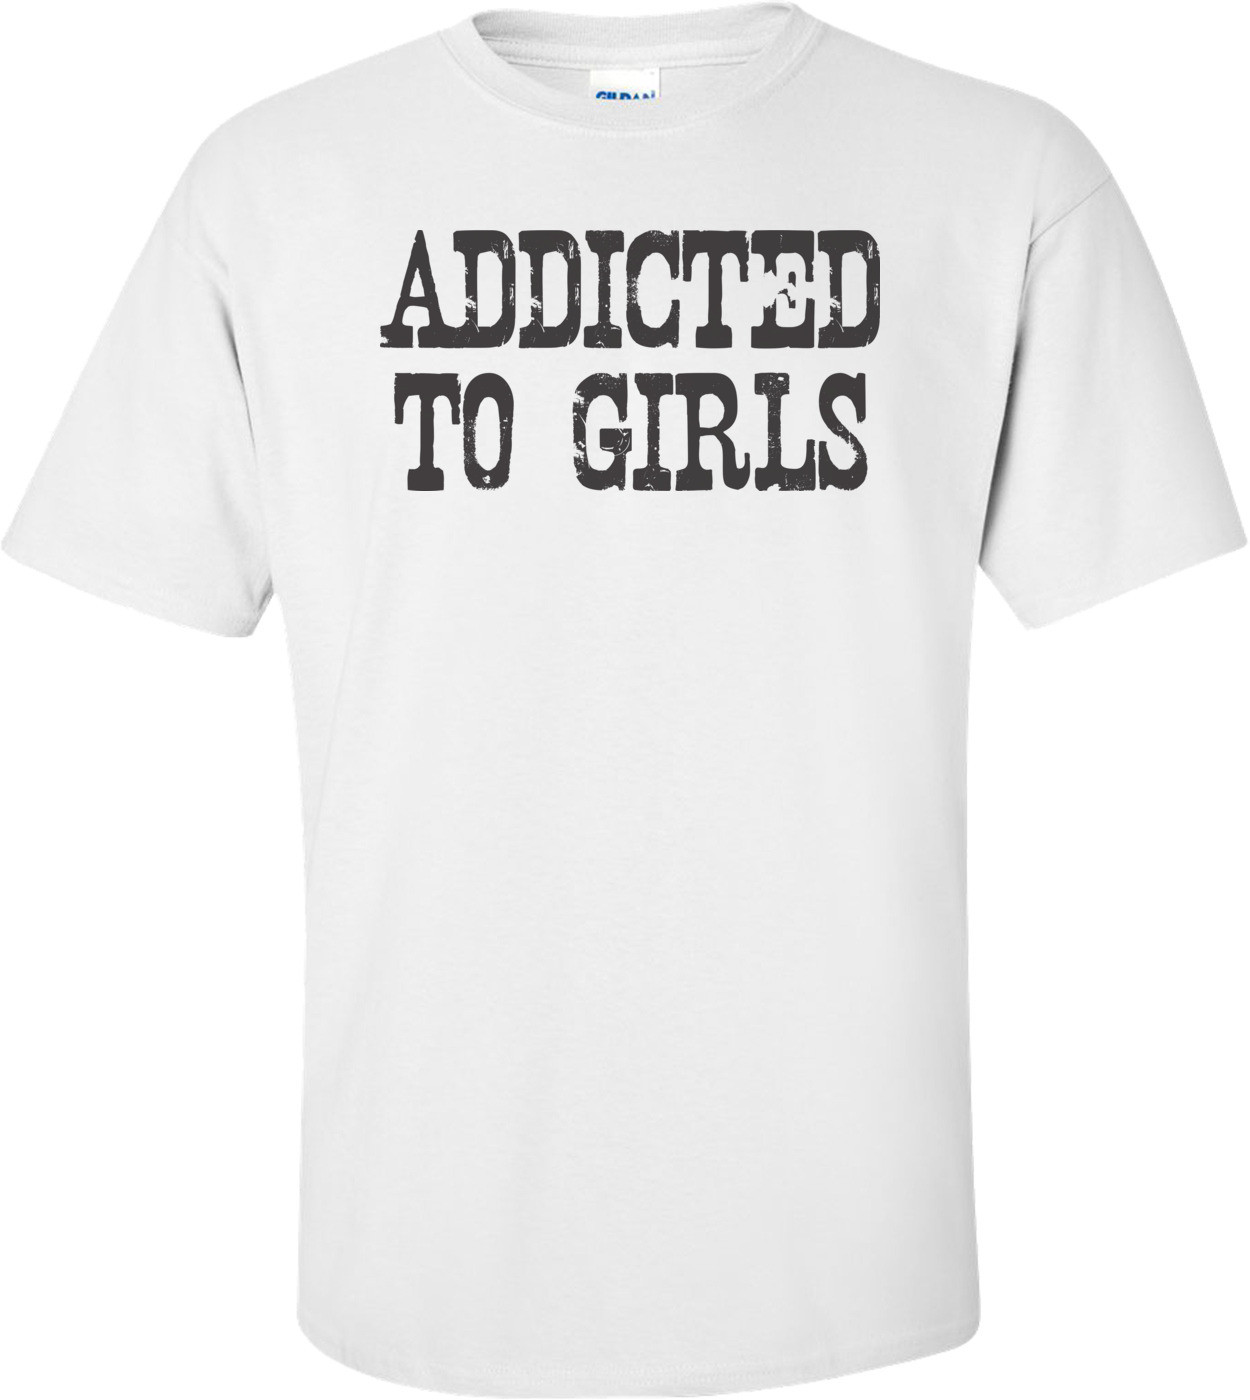 Addicted To Girls